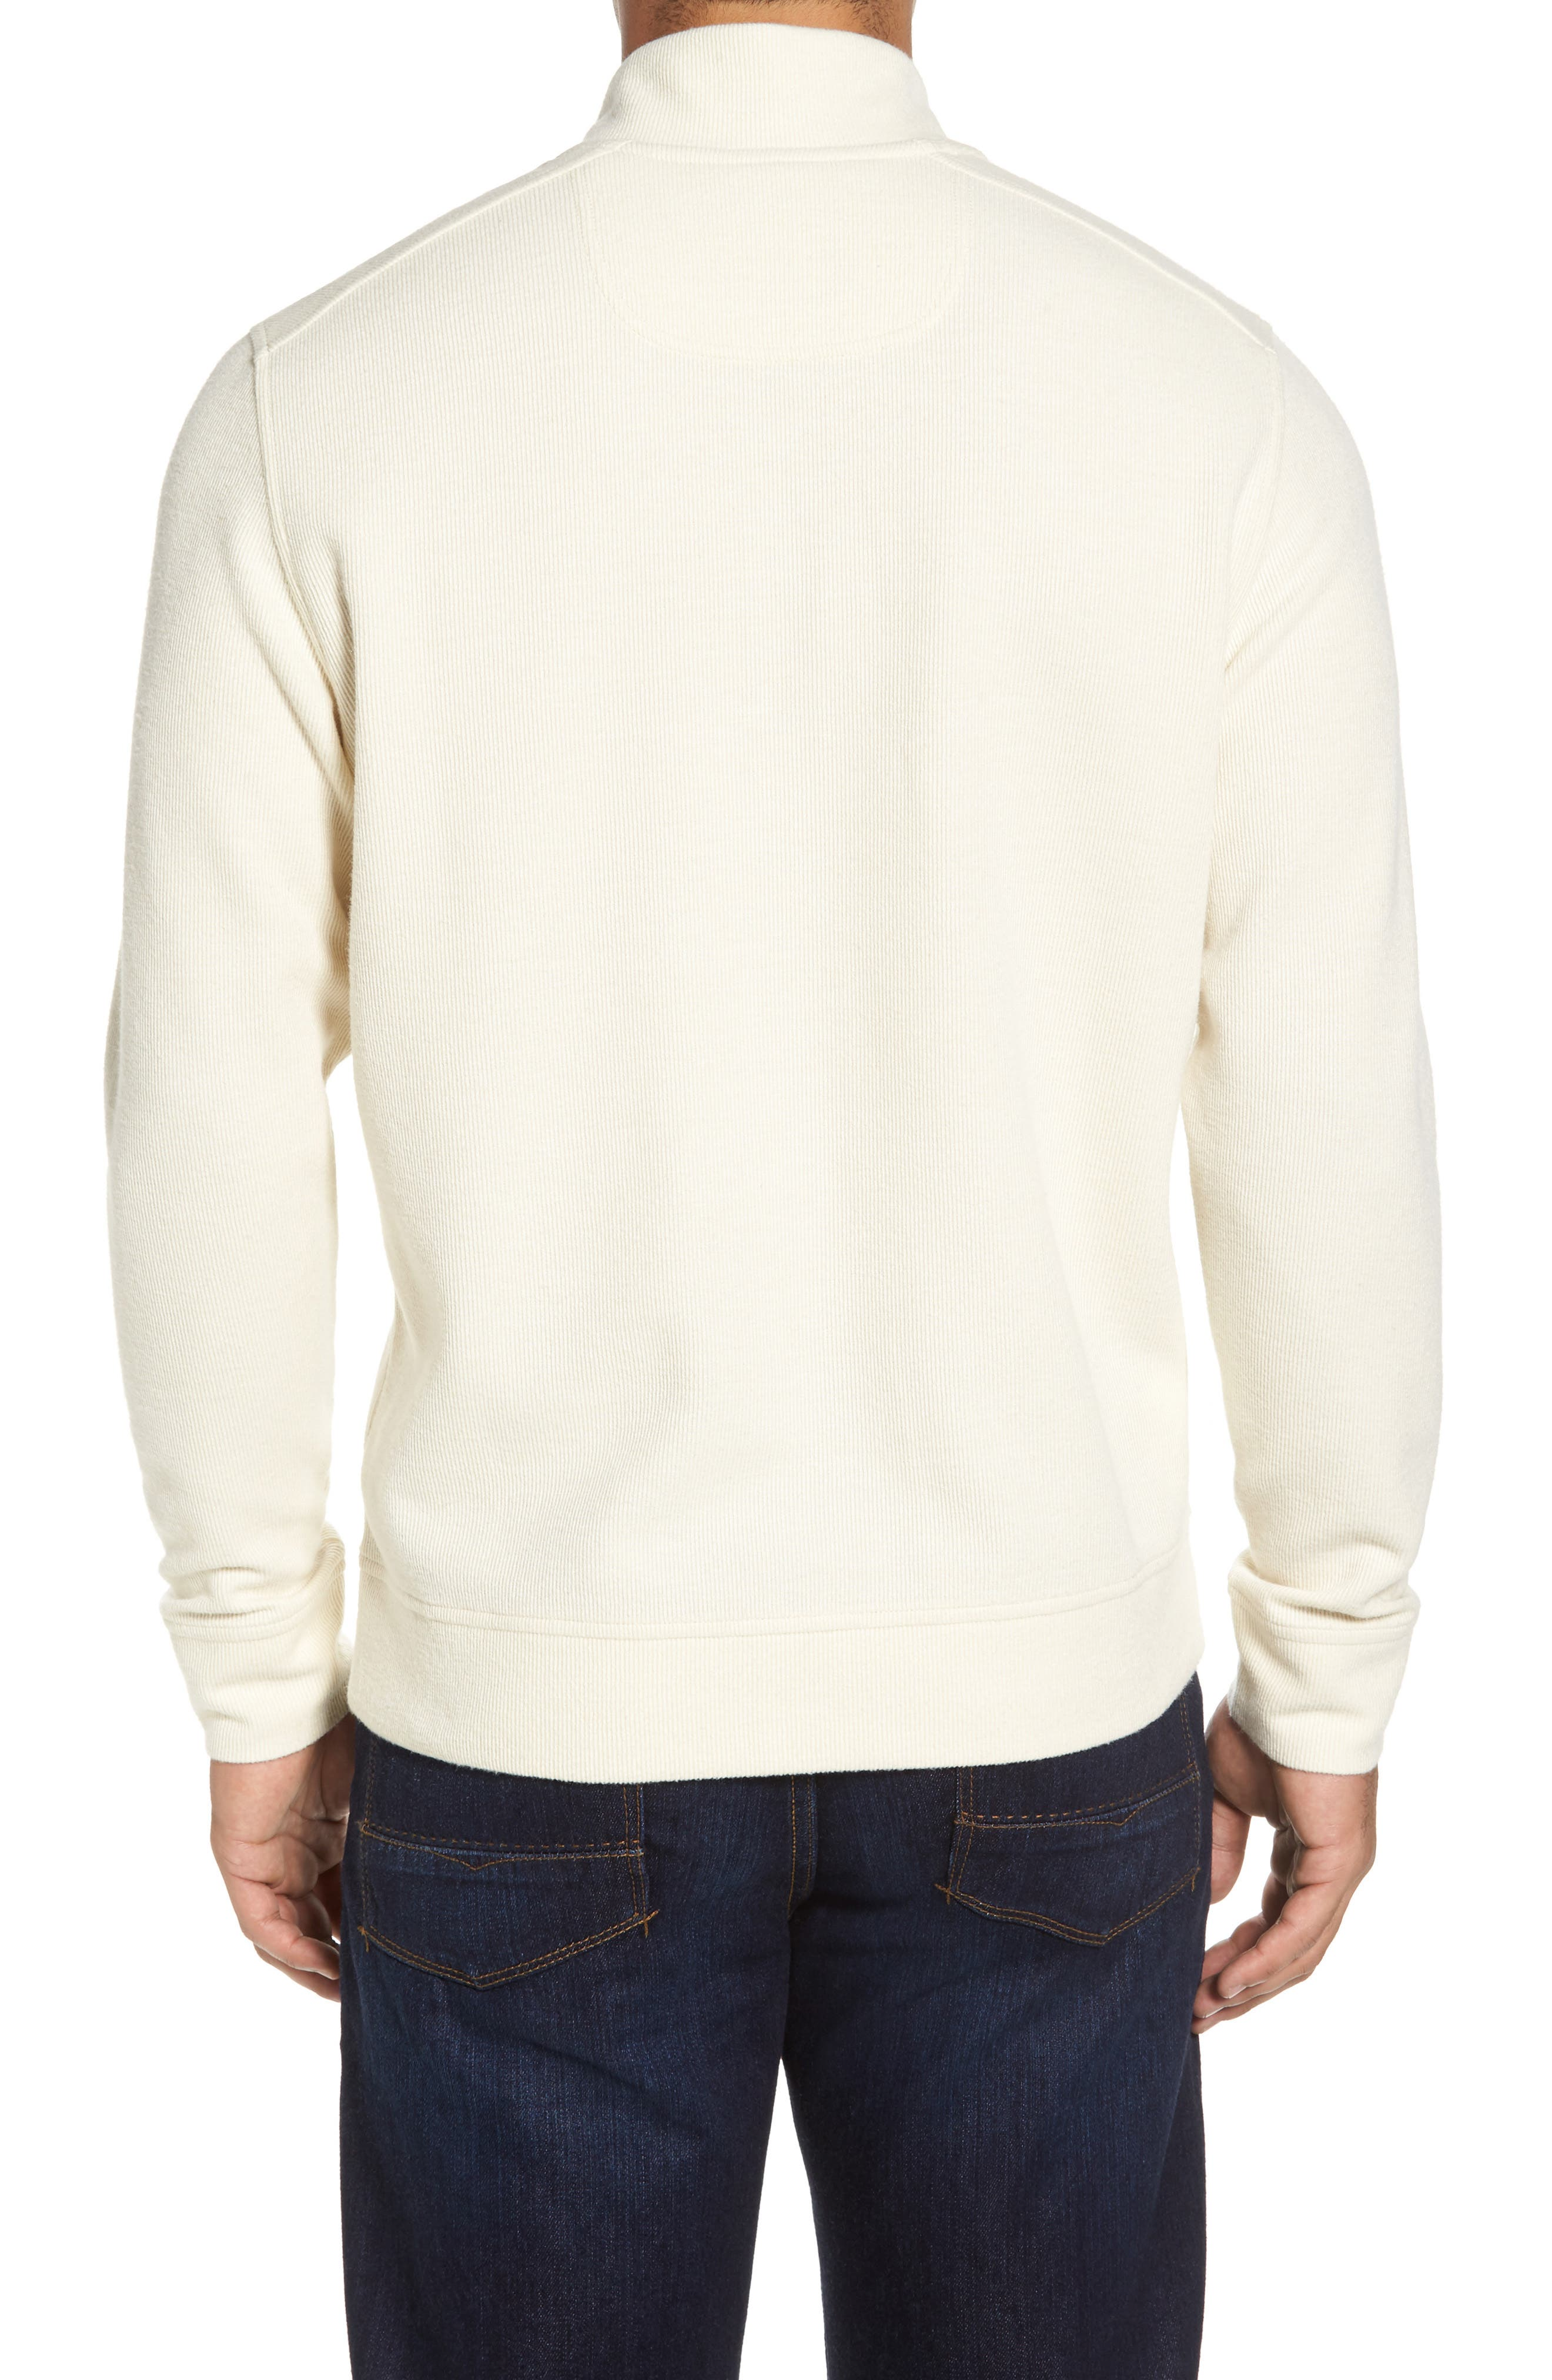 Cold Springs Snap Mock Neck Sweater,                             Alternate thumbnail 8, color,